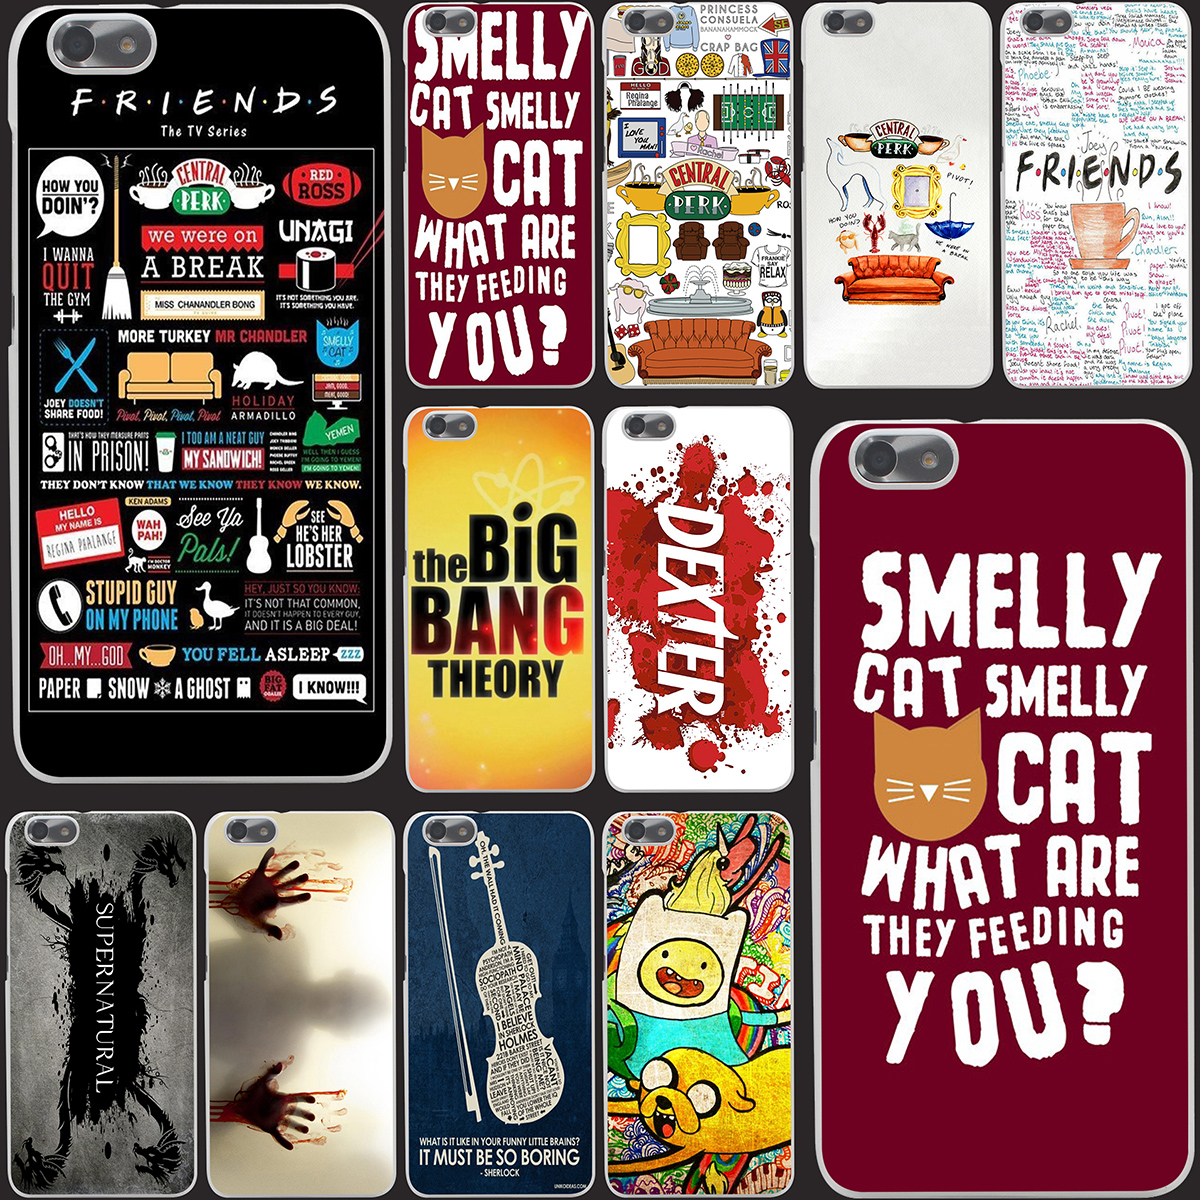 5741-OIE FRIENDS FUNNY TV SHOW Hard Case Transparent Cover for Huawei P6 P7 P8 Lite P9 Lite Plus & Honor 6 7 4C 4X G7